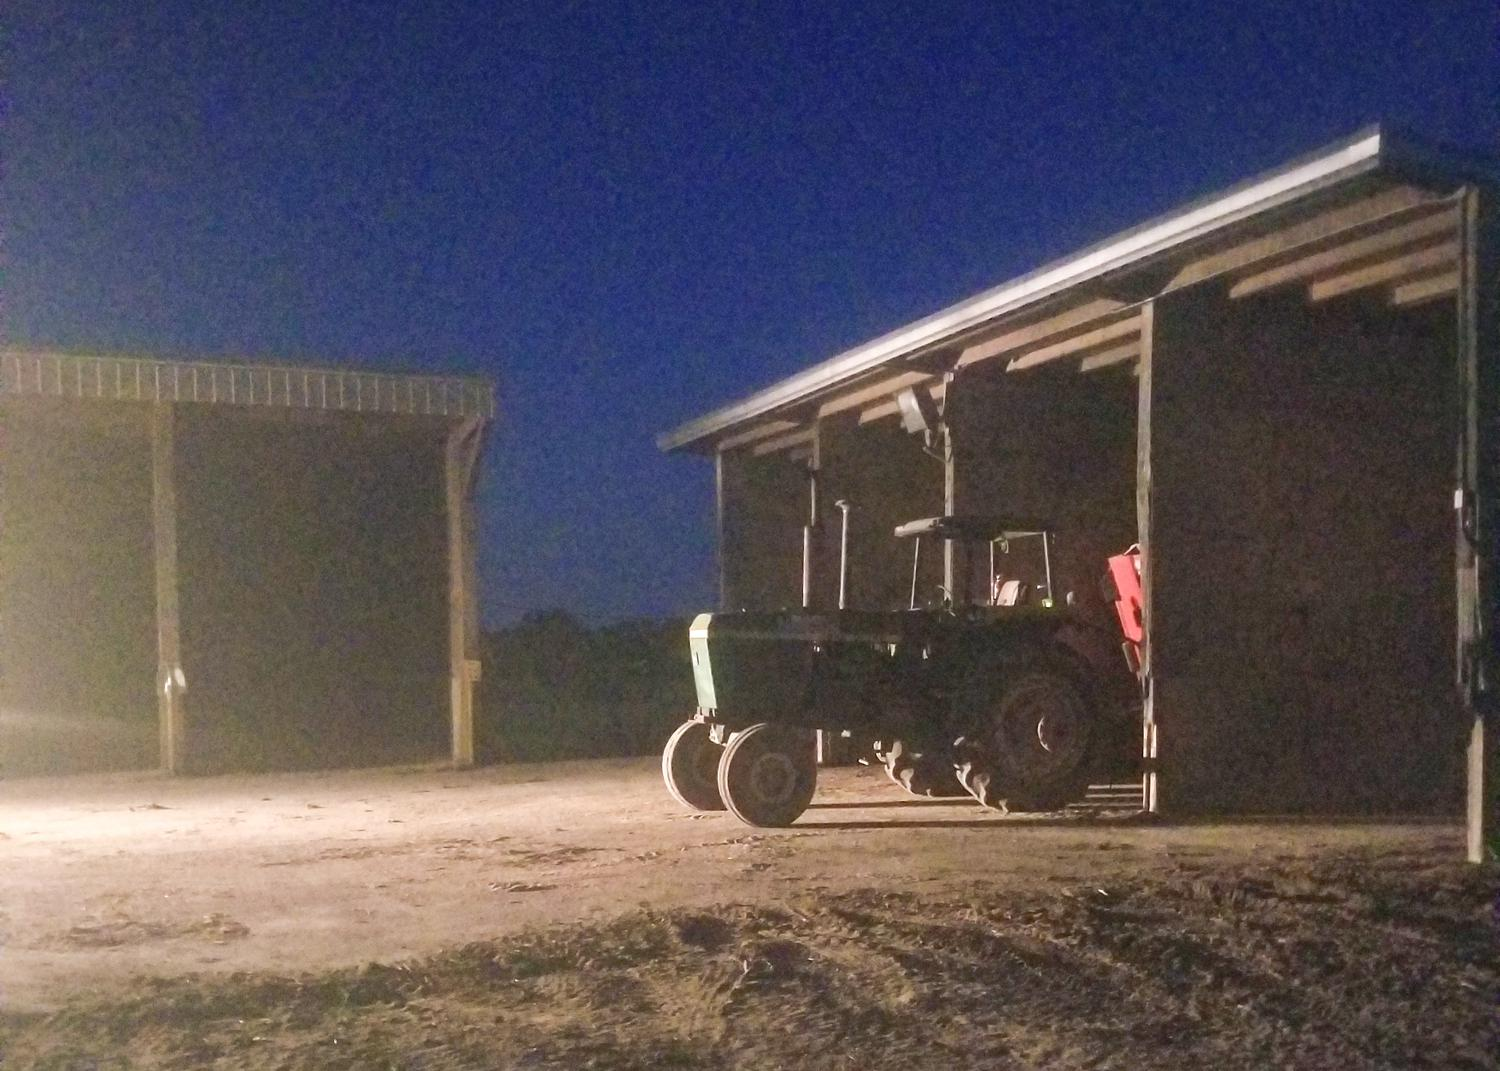 A tractor parked outside of a shed at night.